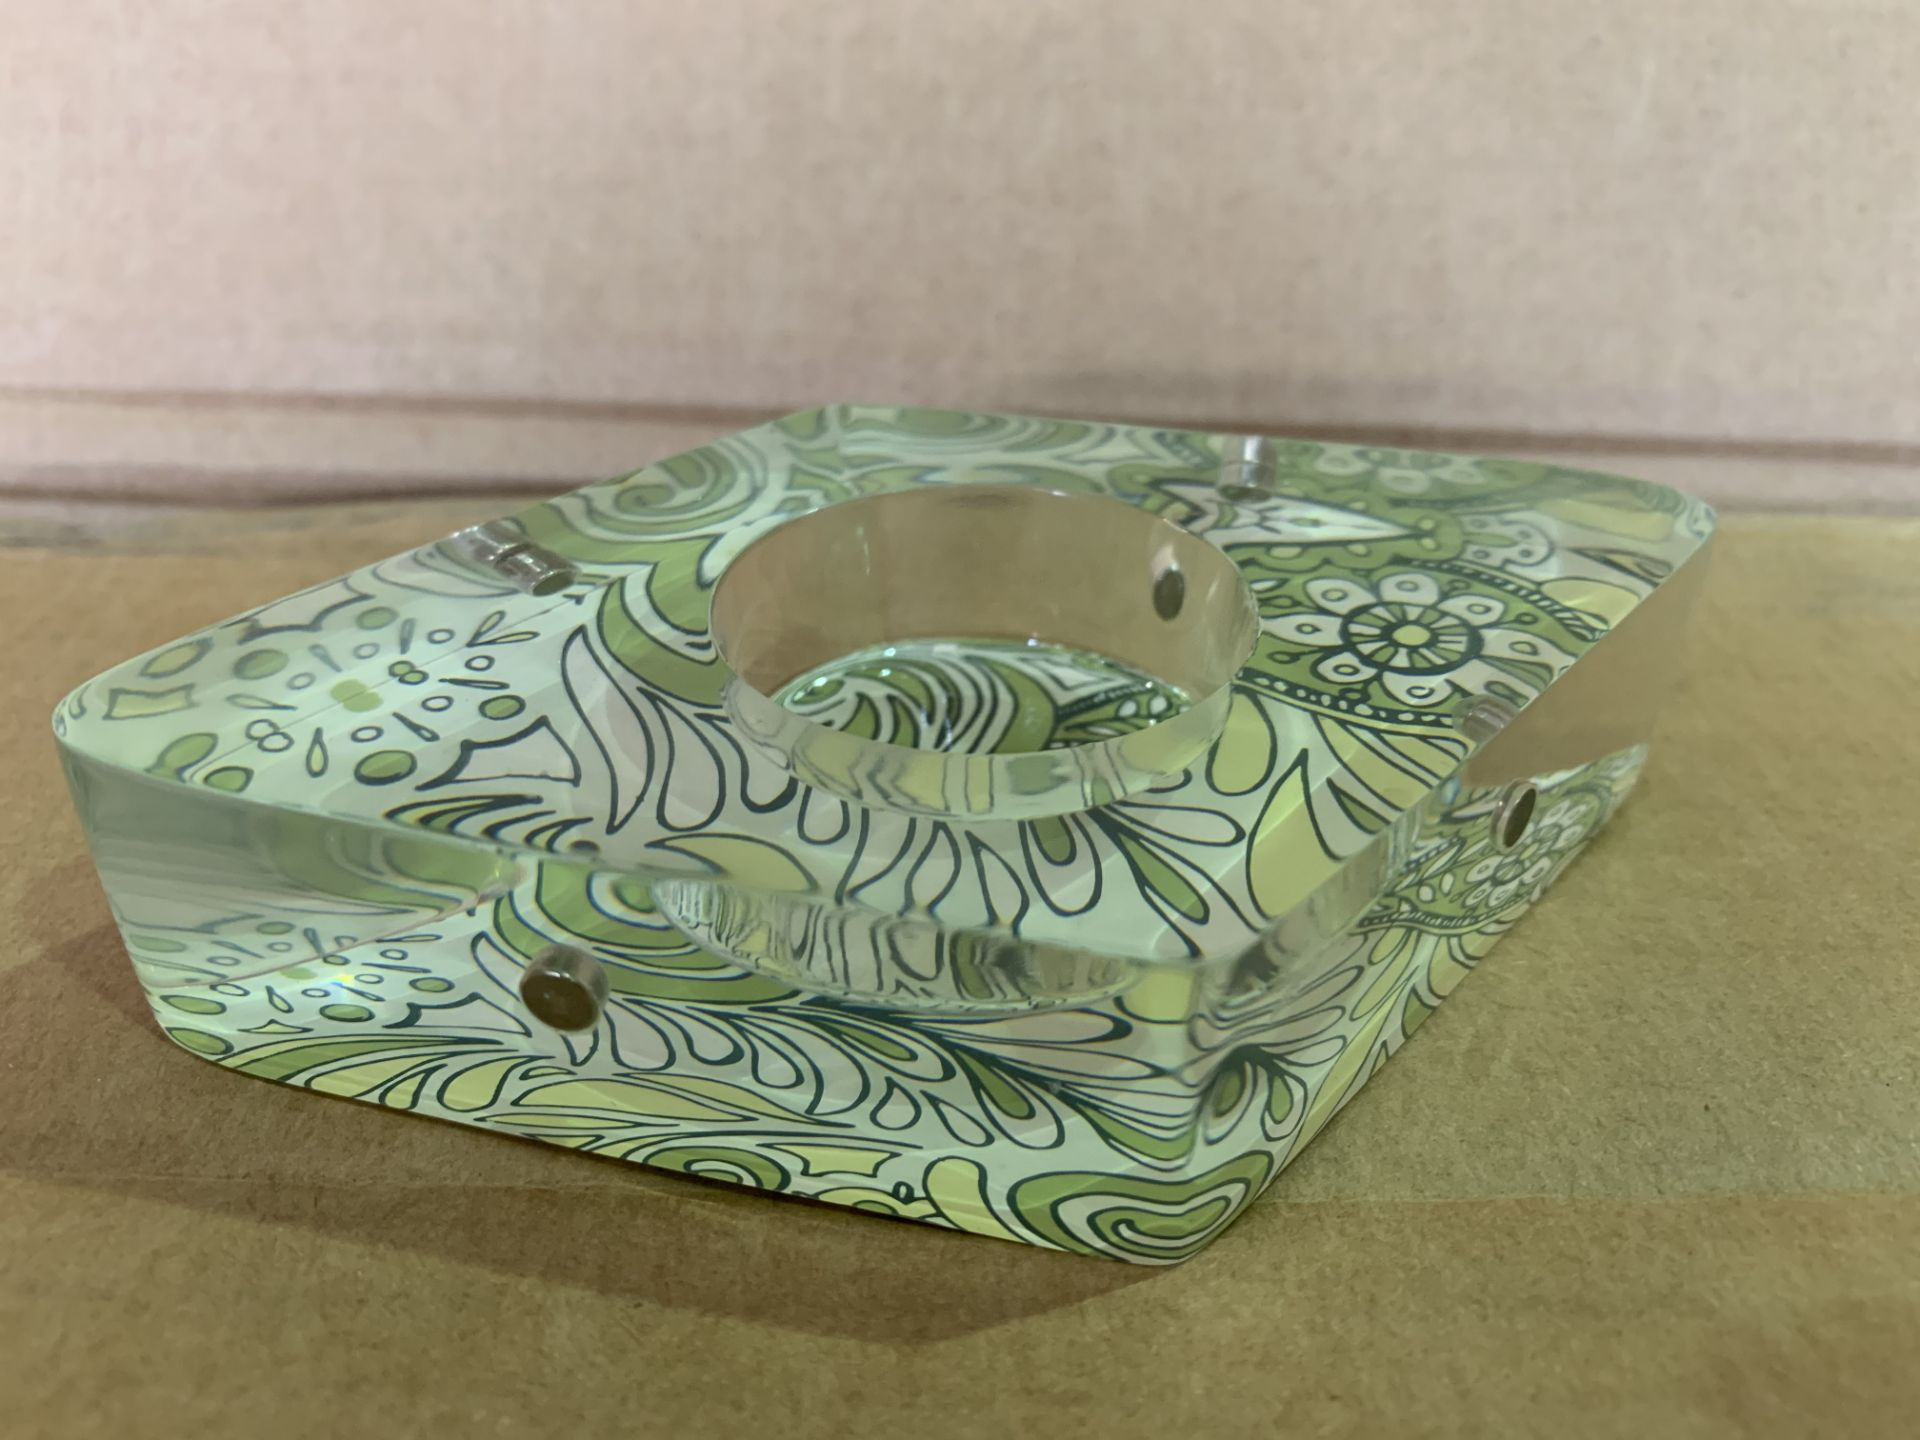 Attractions Kiwi Paisley Colourful Patterned Tealight Holders - 72 Units Per Lot